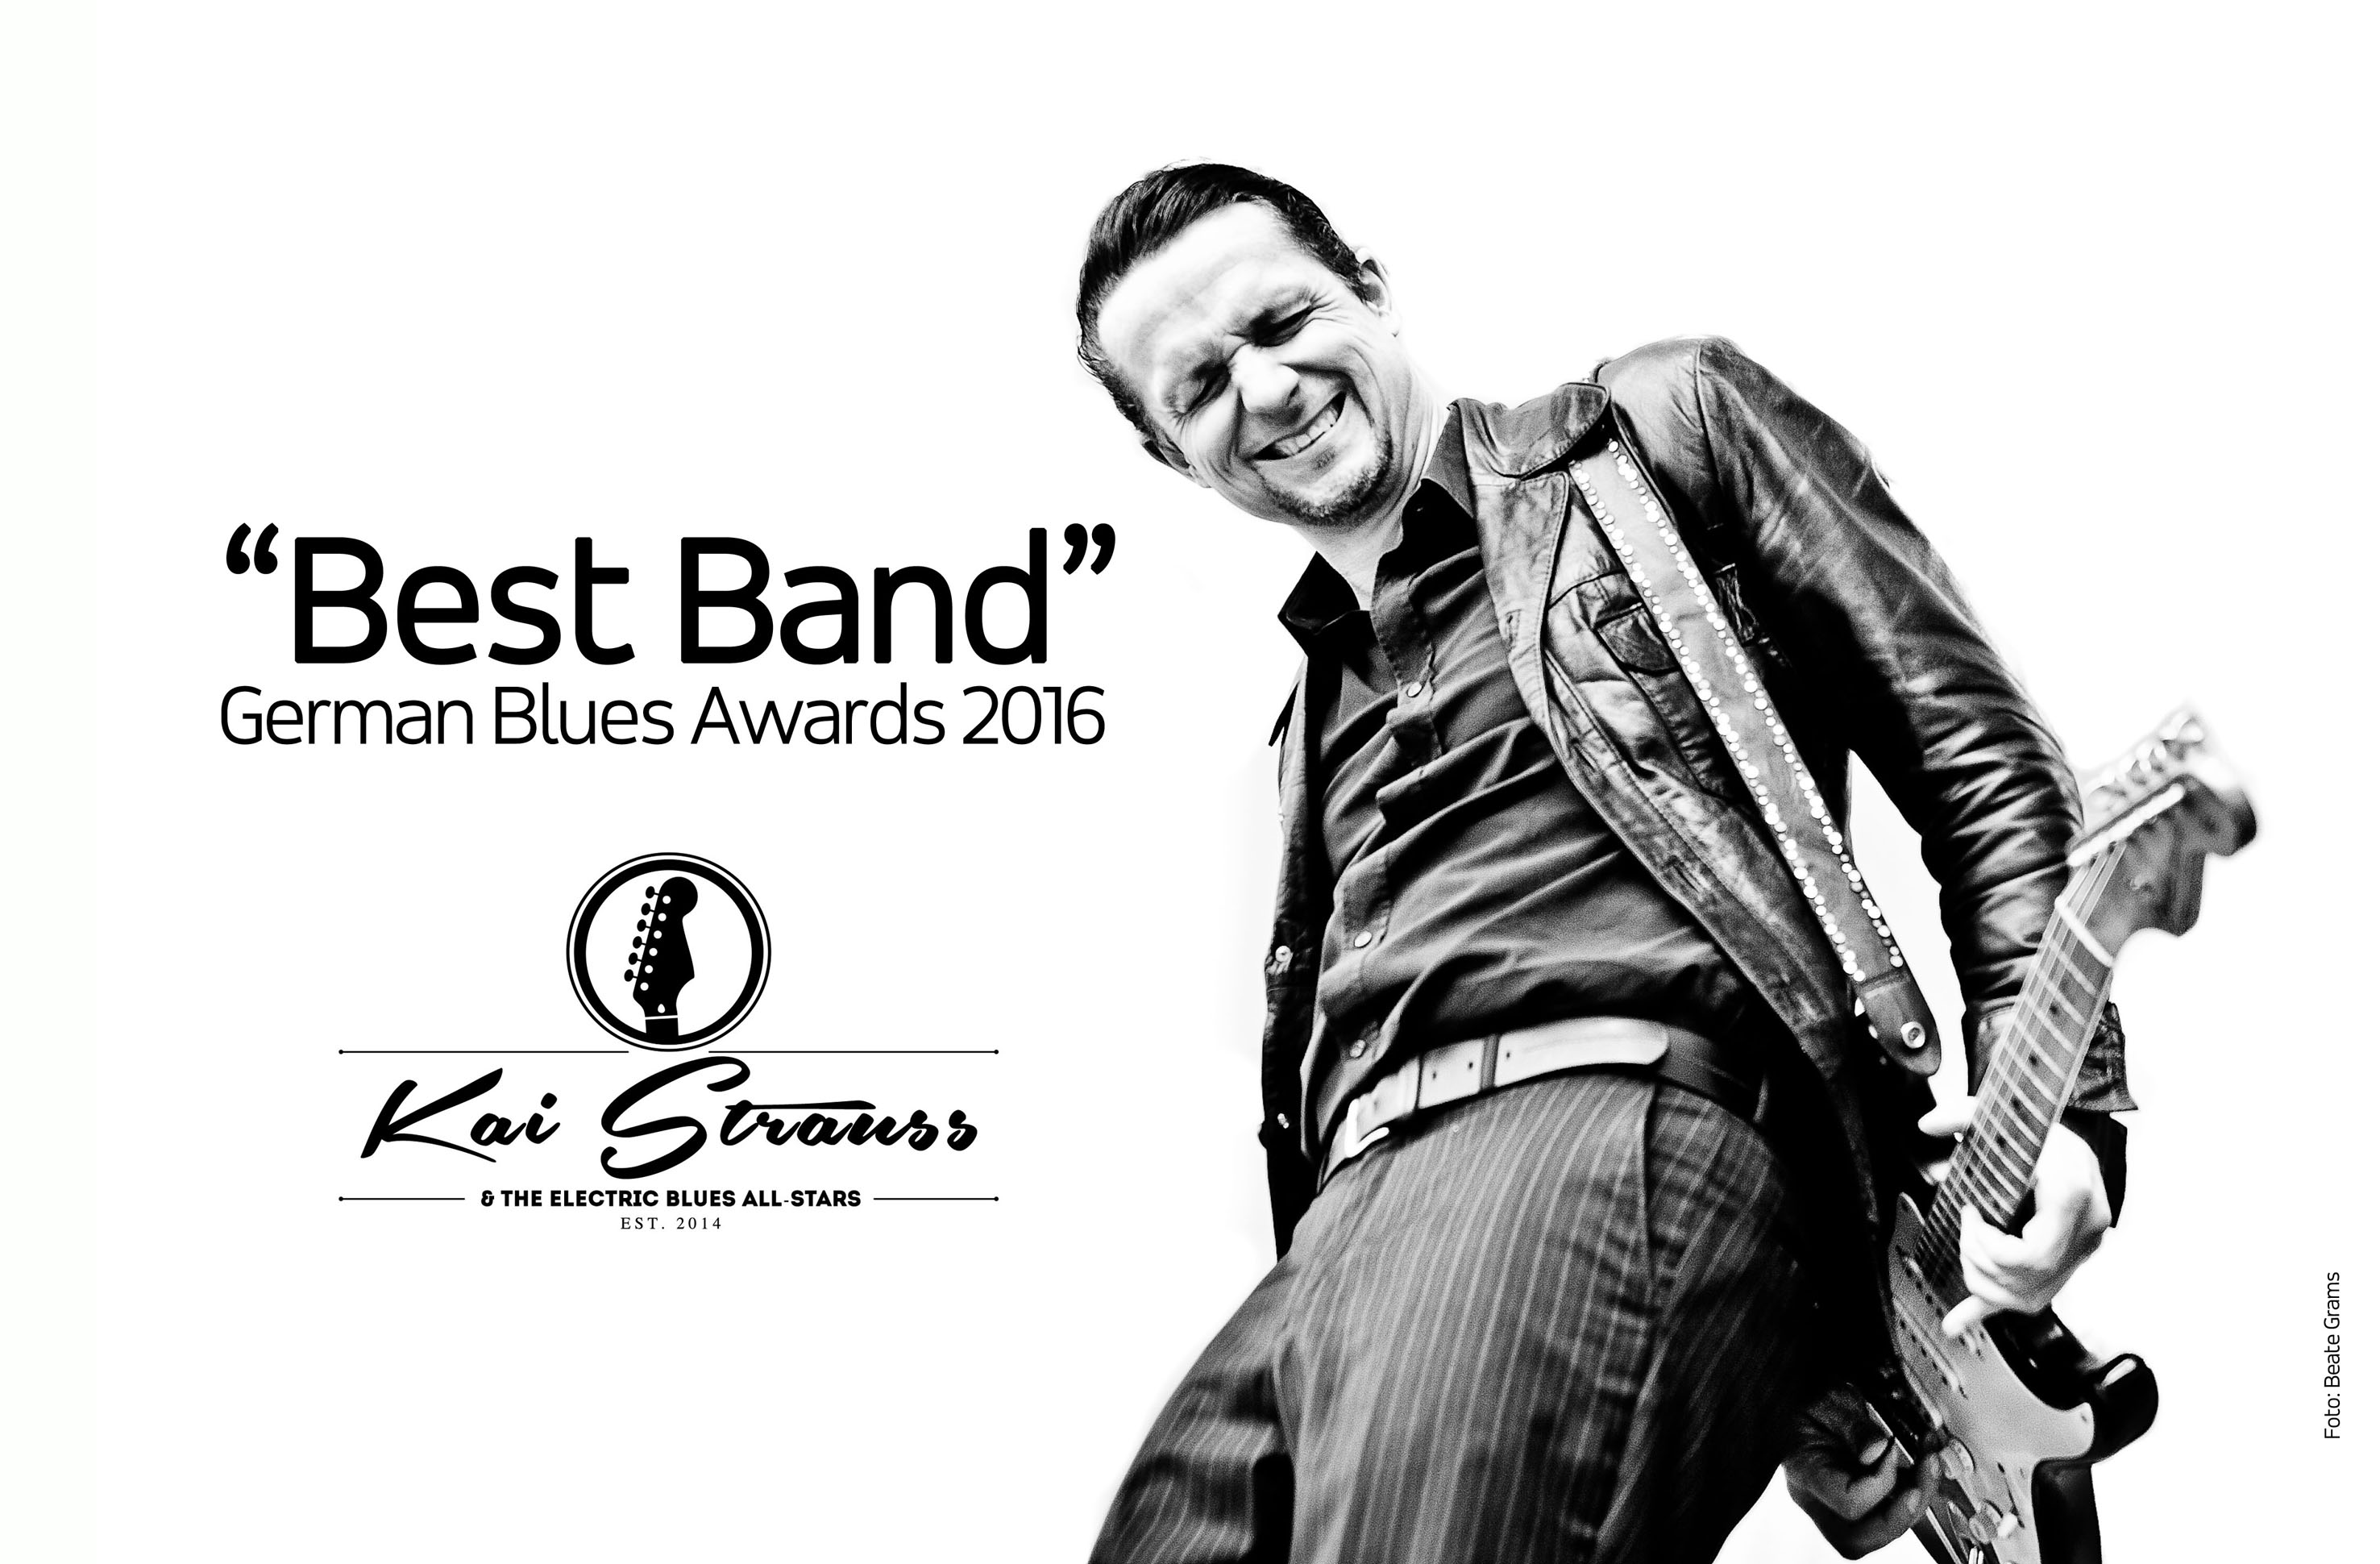 German Blues Awards Best Band